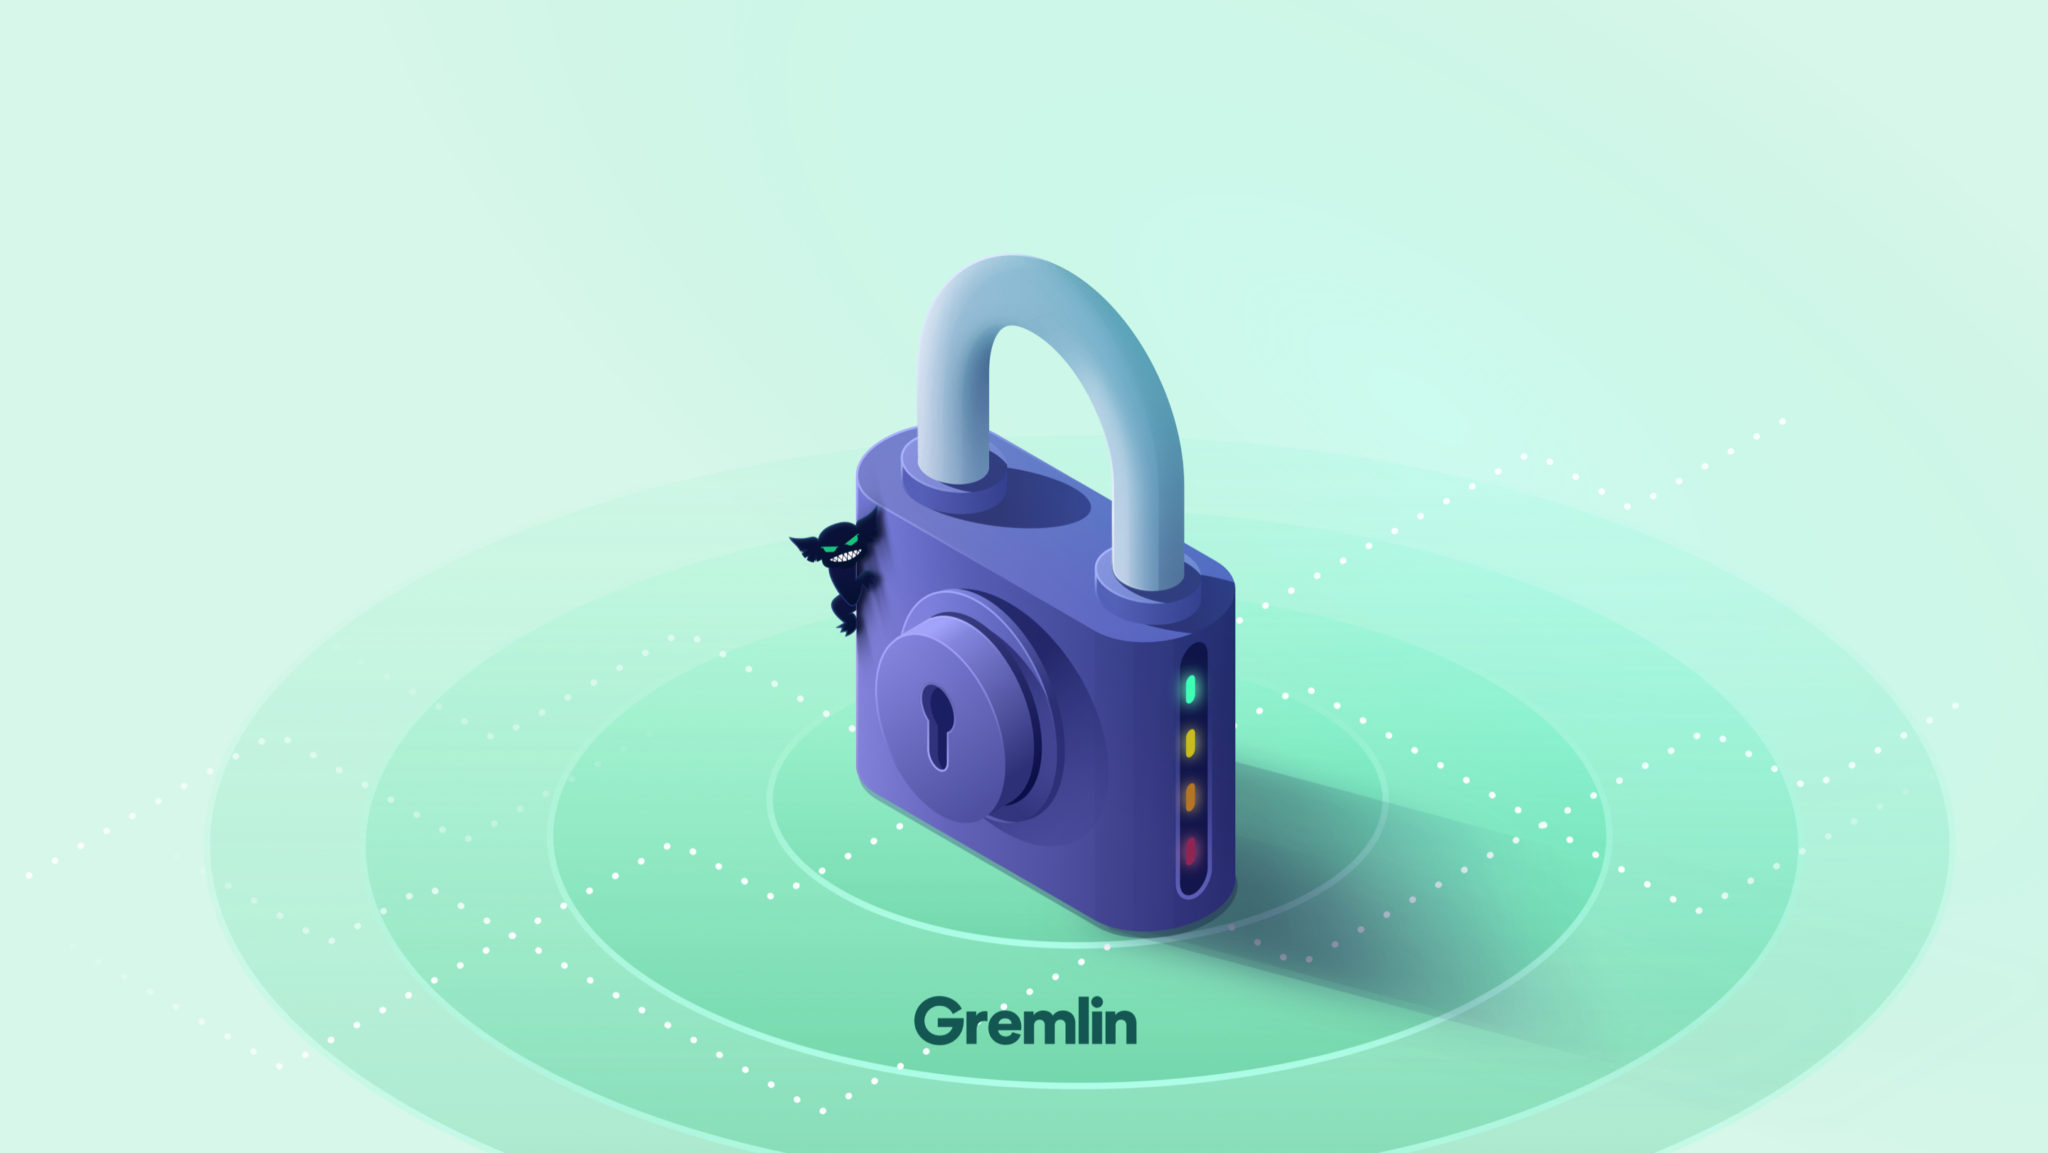 Illustration_08-Gremlin@2x